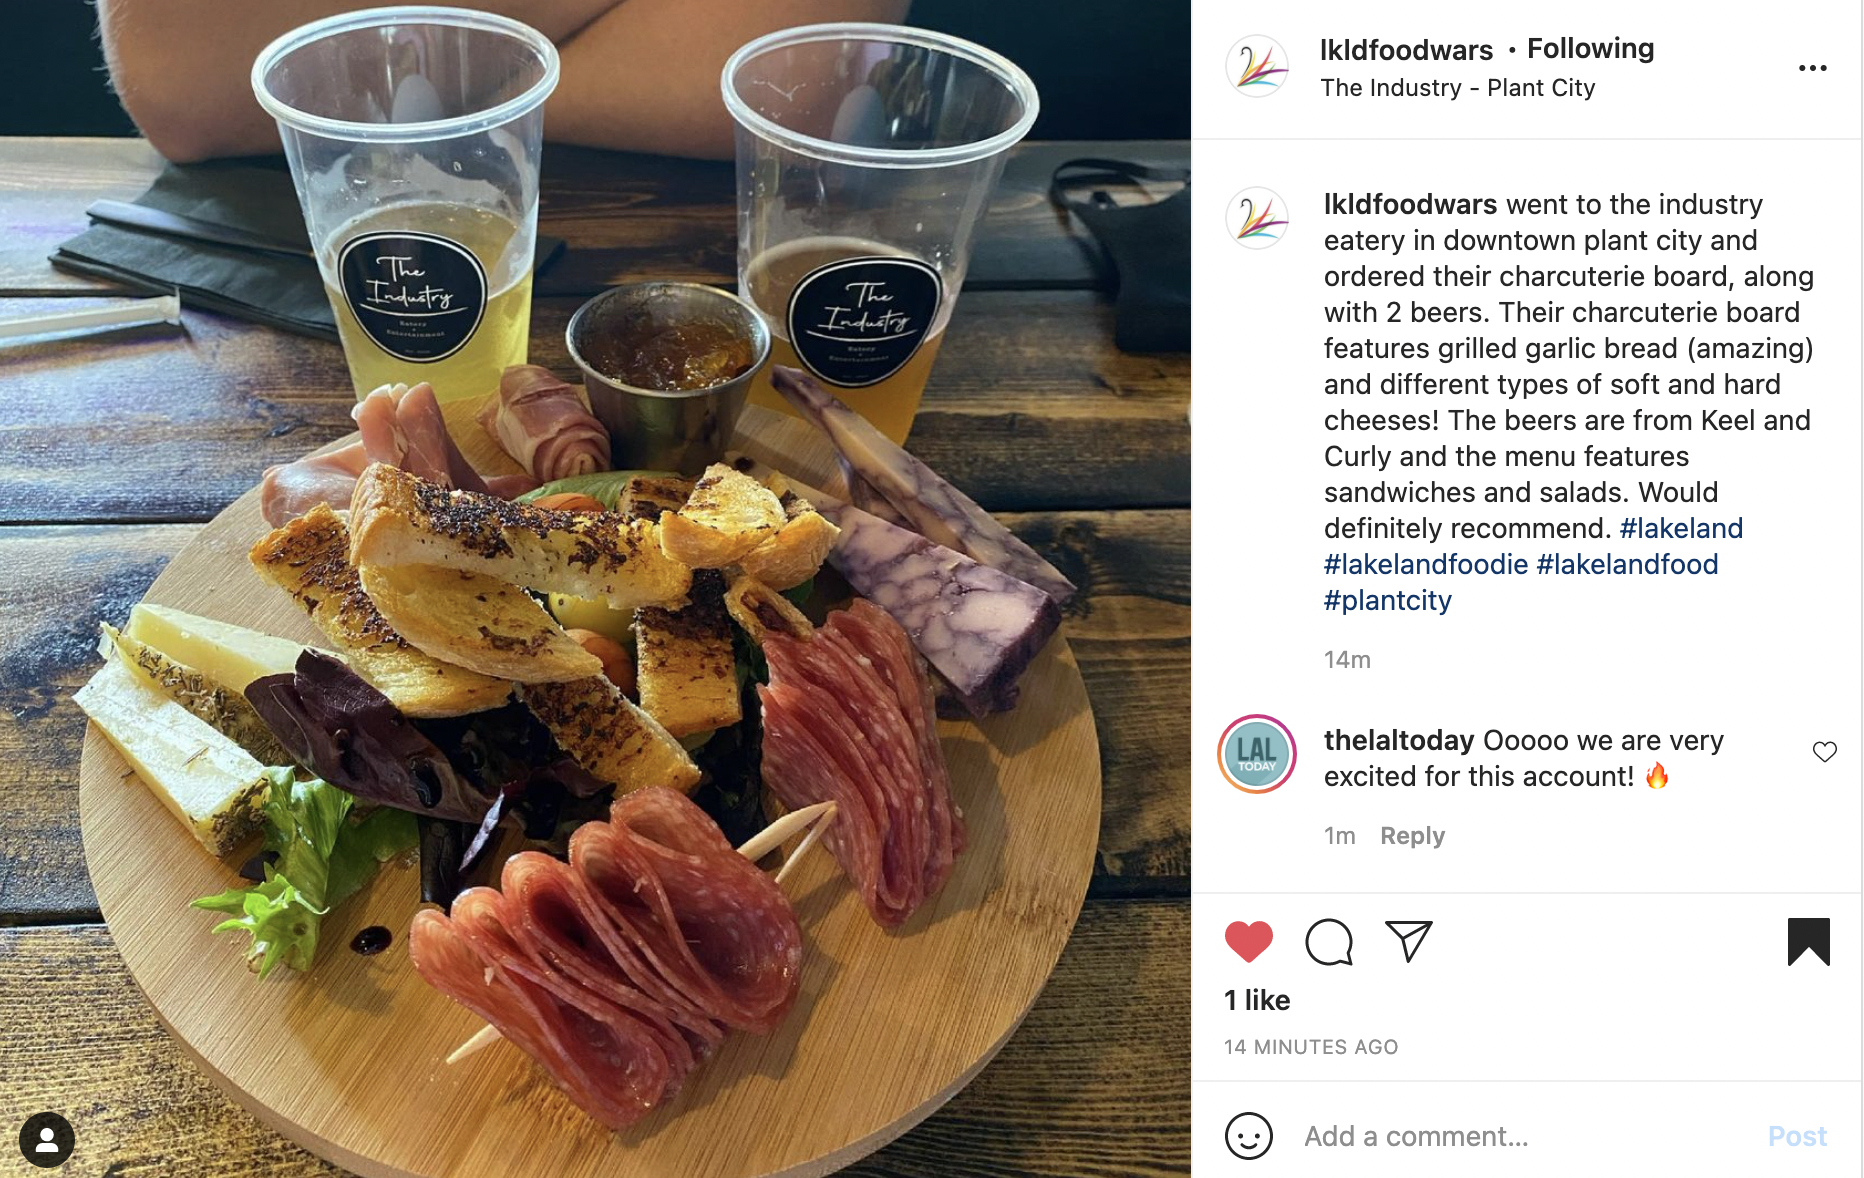 Photo of charcuterie board and two beers at The Industry Eatery in Plant City, FL.